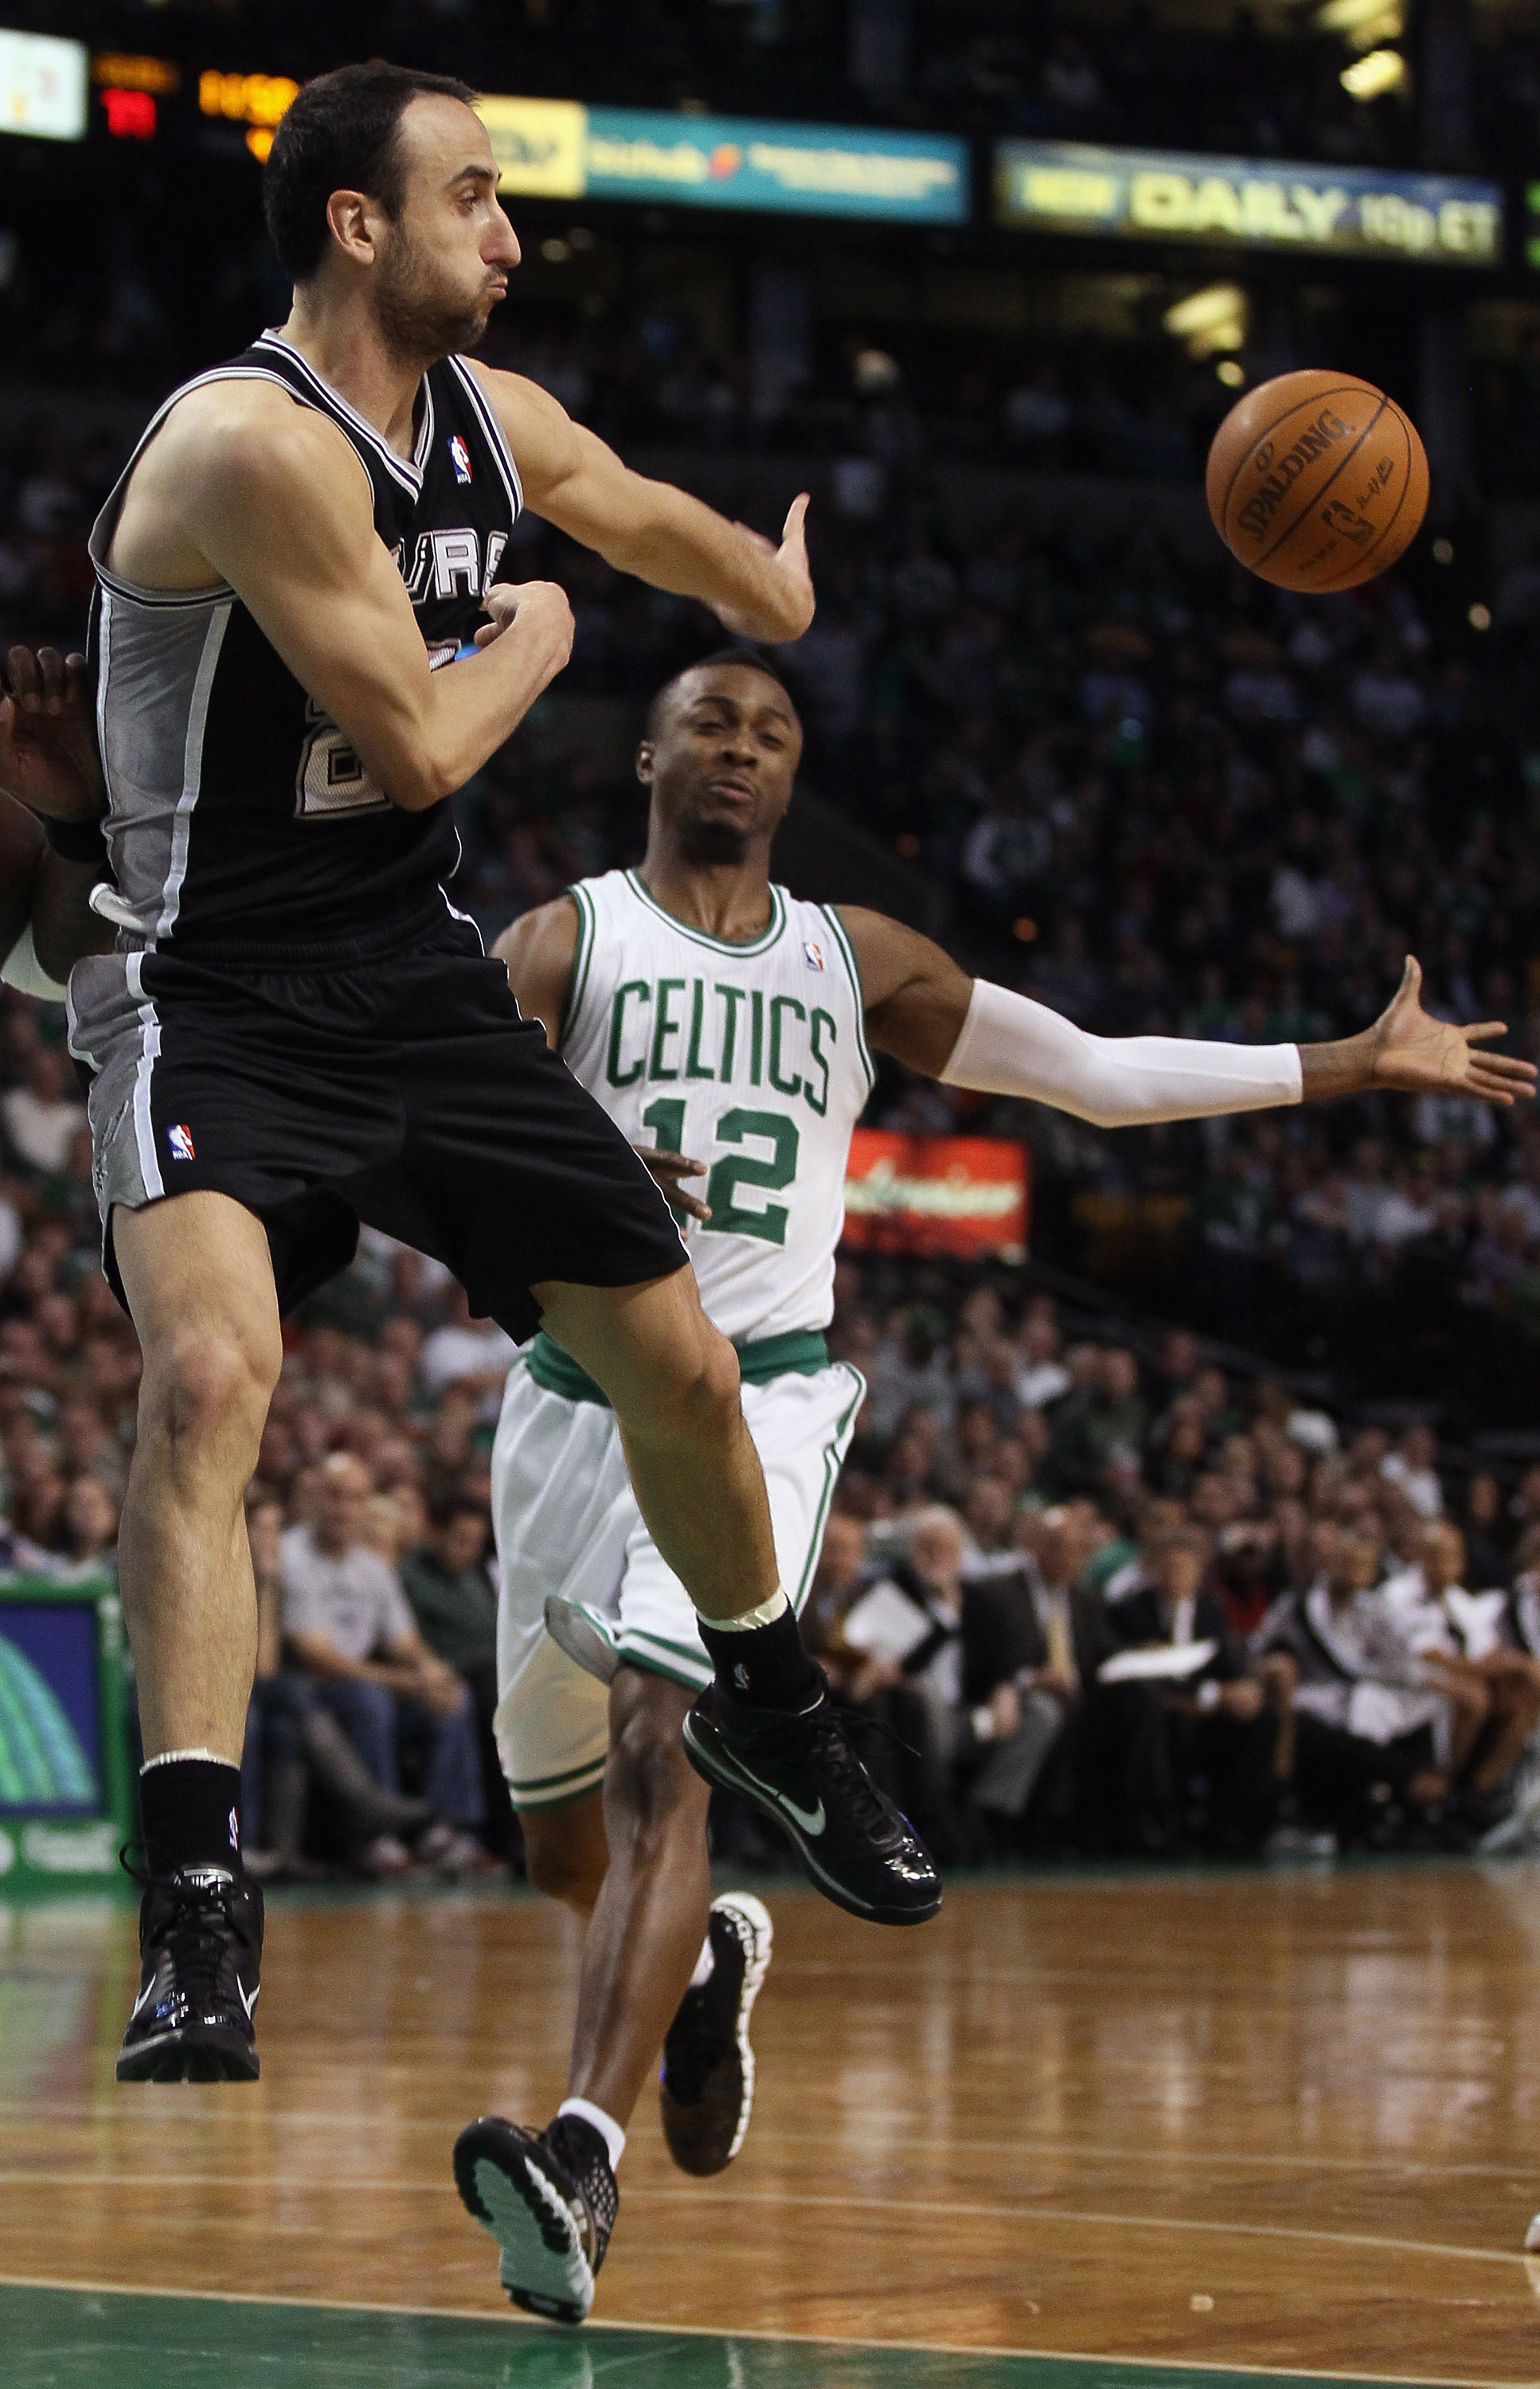 BOSTON, MA - JANUARY 05:  Manu Ginobili #20 of the San Antonio Spurs passes the ball as Von Wafer #12 of the Boston Celtics defends on January 5, 2011 at the TD Garden in Boston, Massachusetts. The Celtics defeated the Spurs 105-103. NOTE TO USER: User ex